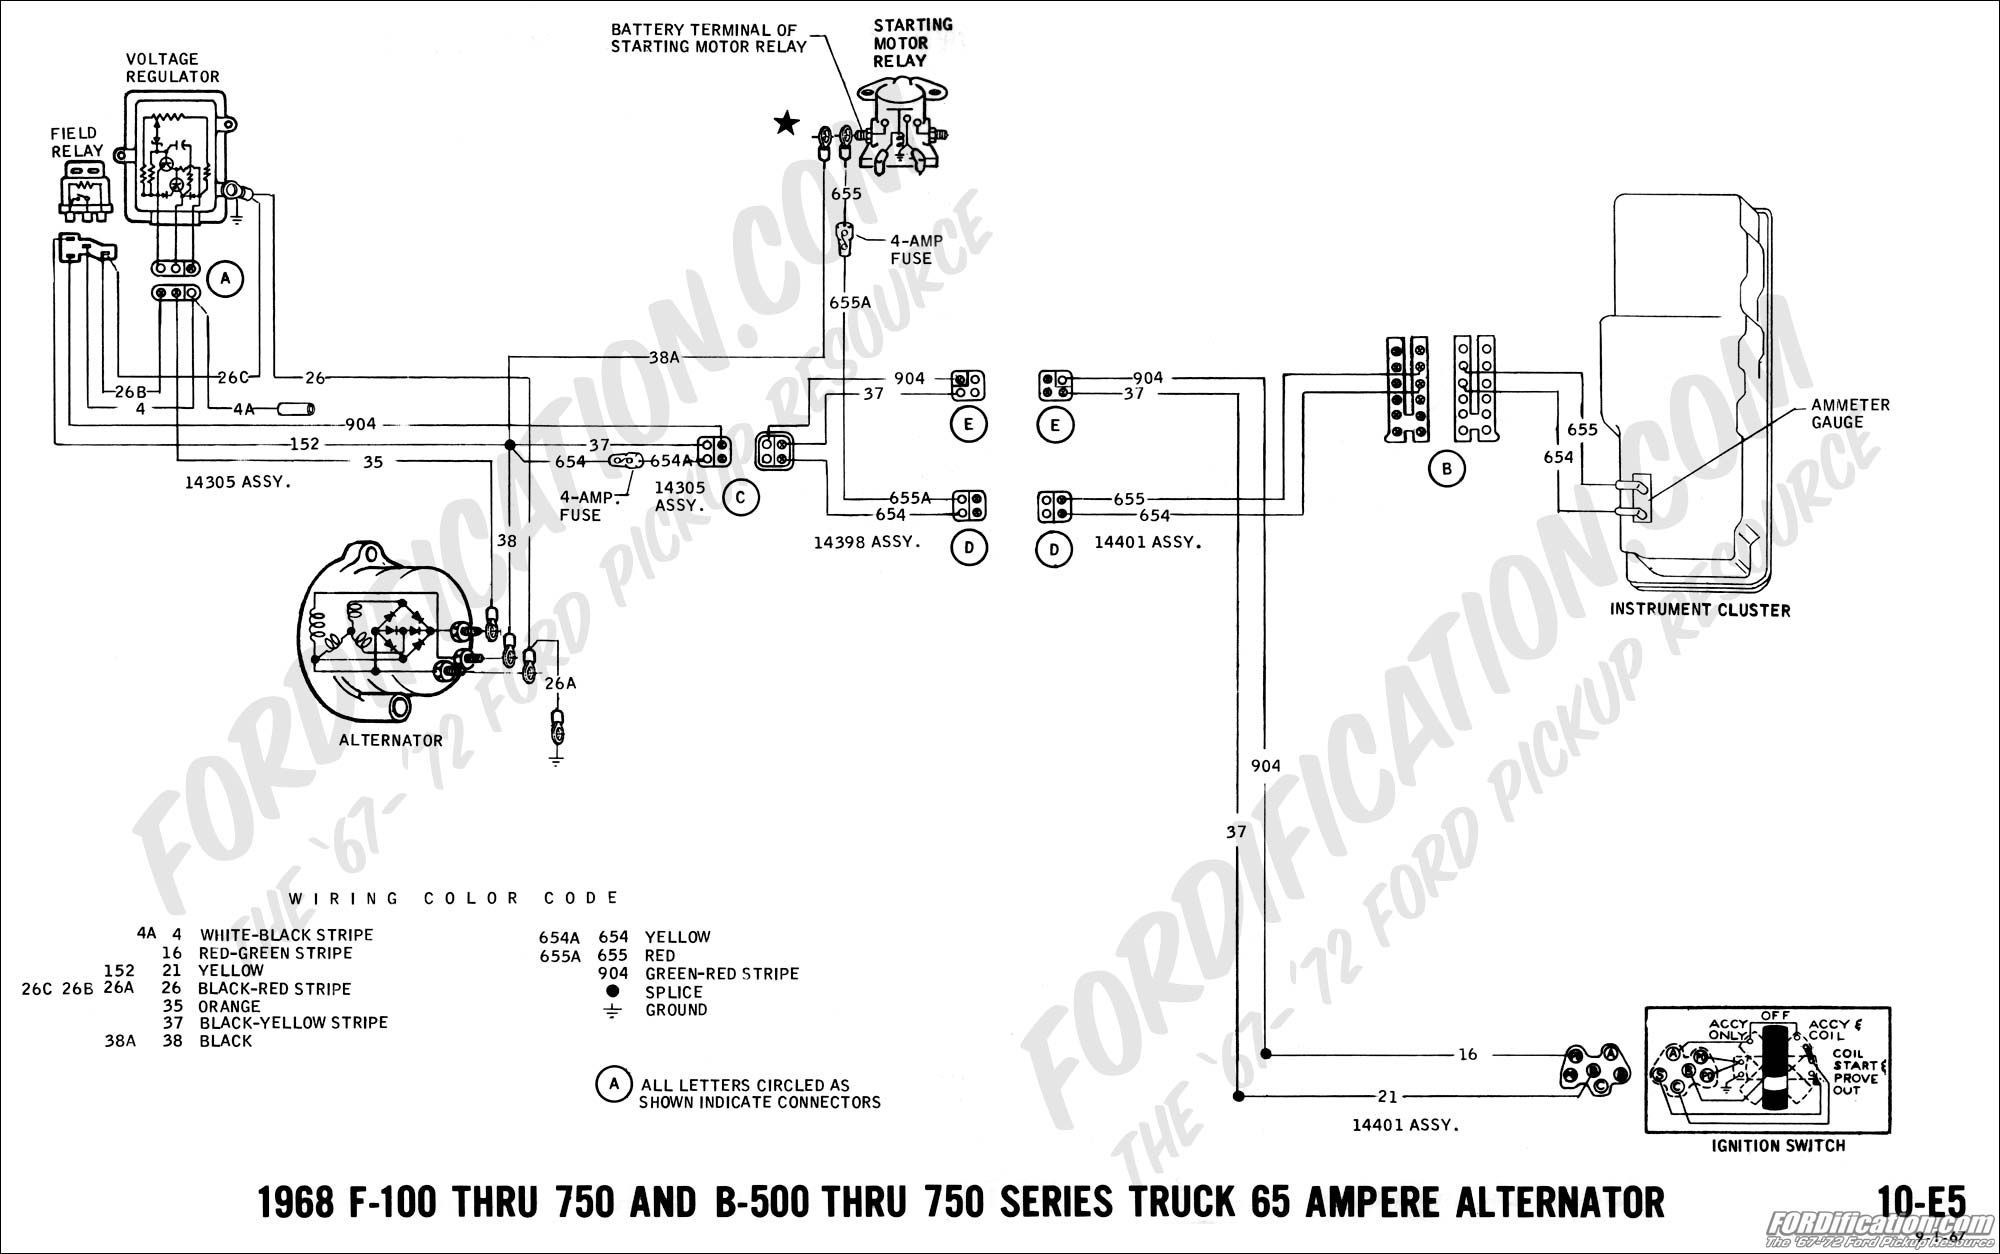 Kioti Tractor Wiring Diagrams | Wiring Diagram on international tractor wiring diagrams, case tractor wiring diagrams, antique tractor wiring diagrams, kubota tractor wiring diagrams, montana tractors wiring diagrams, garden tractor ignition wiring diagrams, john deere tractor wiring diagrams, fermec tractor wiring diagrams, universal tractor wiring diagrams, mahindra wiring diagrams, long tractor wiring diagrams, bolens tractor wiring diagrams, kioti dk35 wiring-diagram, gravely wiring diagrams, kubota tractor parts diagrams, minneapolis moline tractor wiring diagrams, kioti ck25 wiring-diagram, create chess diagrams, ford tractor wiring diagrams, century tractor wiring diagrams,